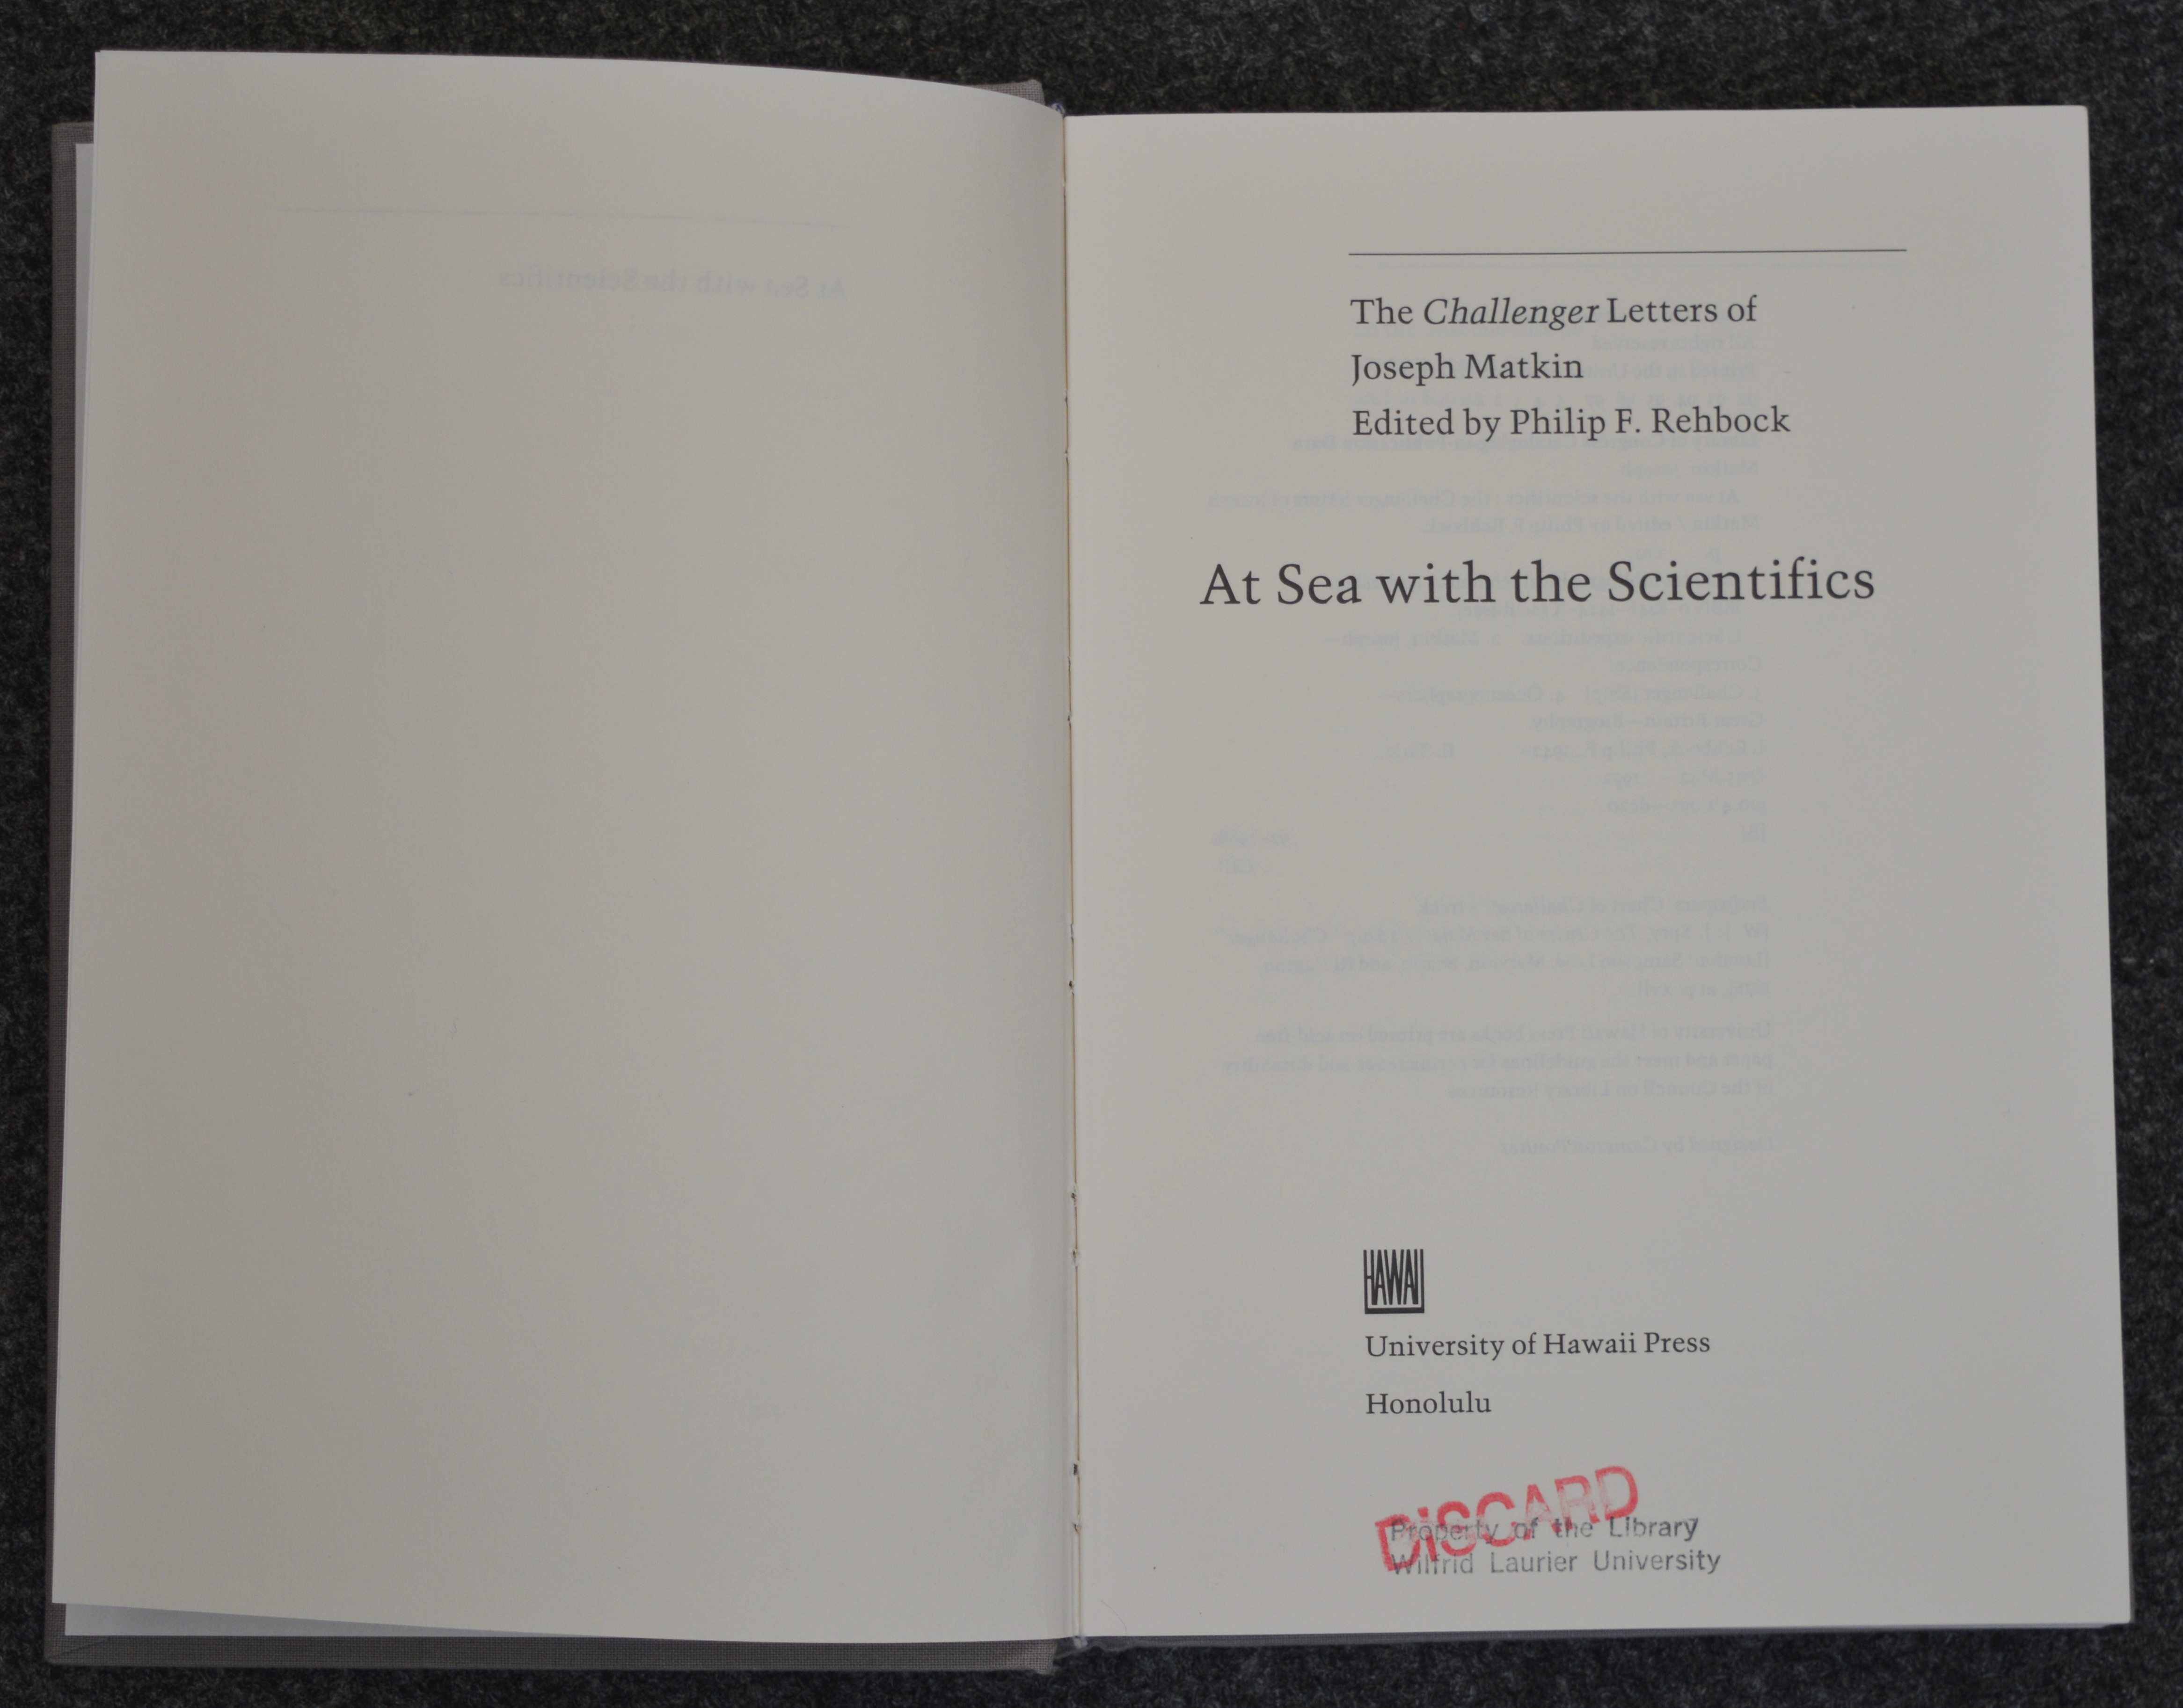 At Sea with the Scientifics by Philip Rehbock